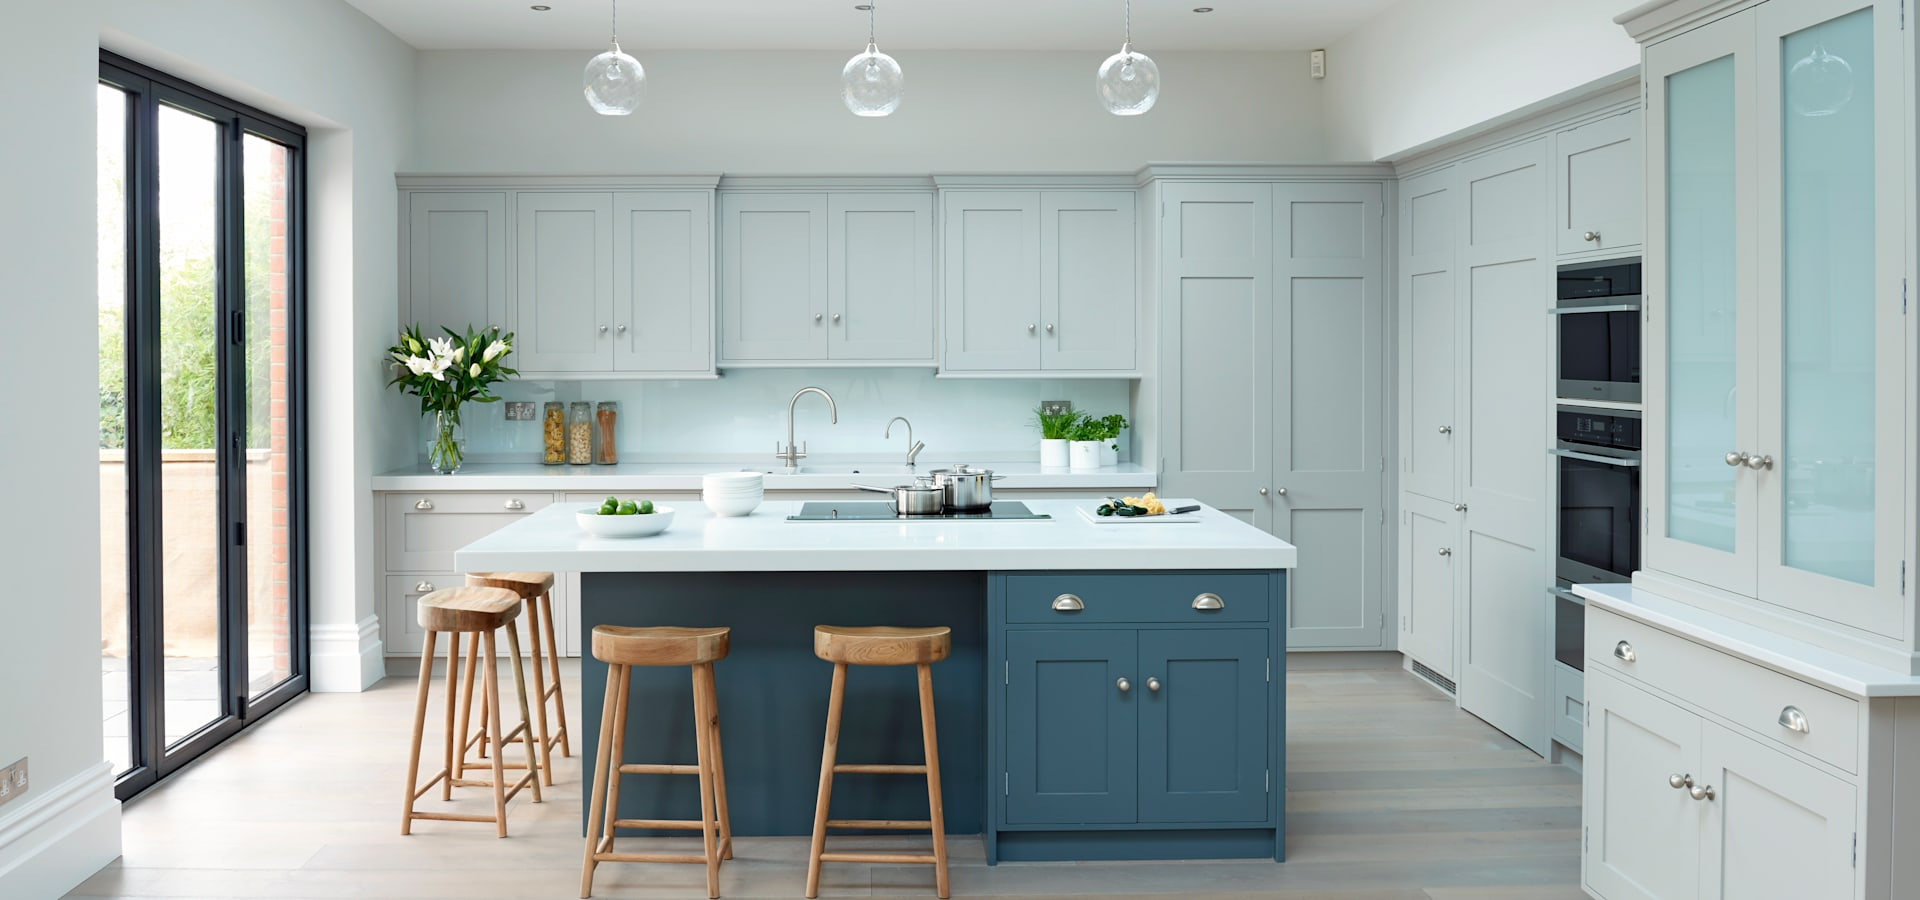 Rencraft: Kitchen Planners in Sevenoaks | homify